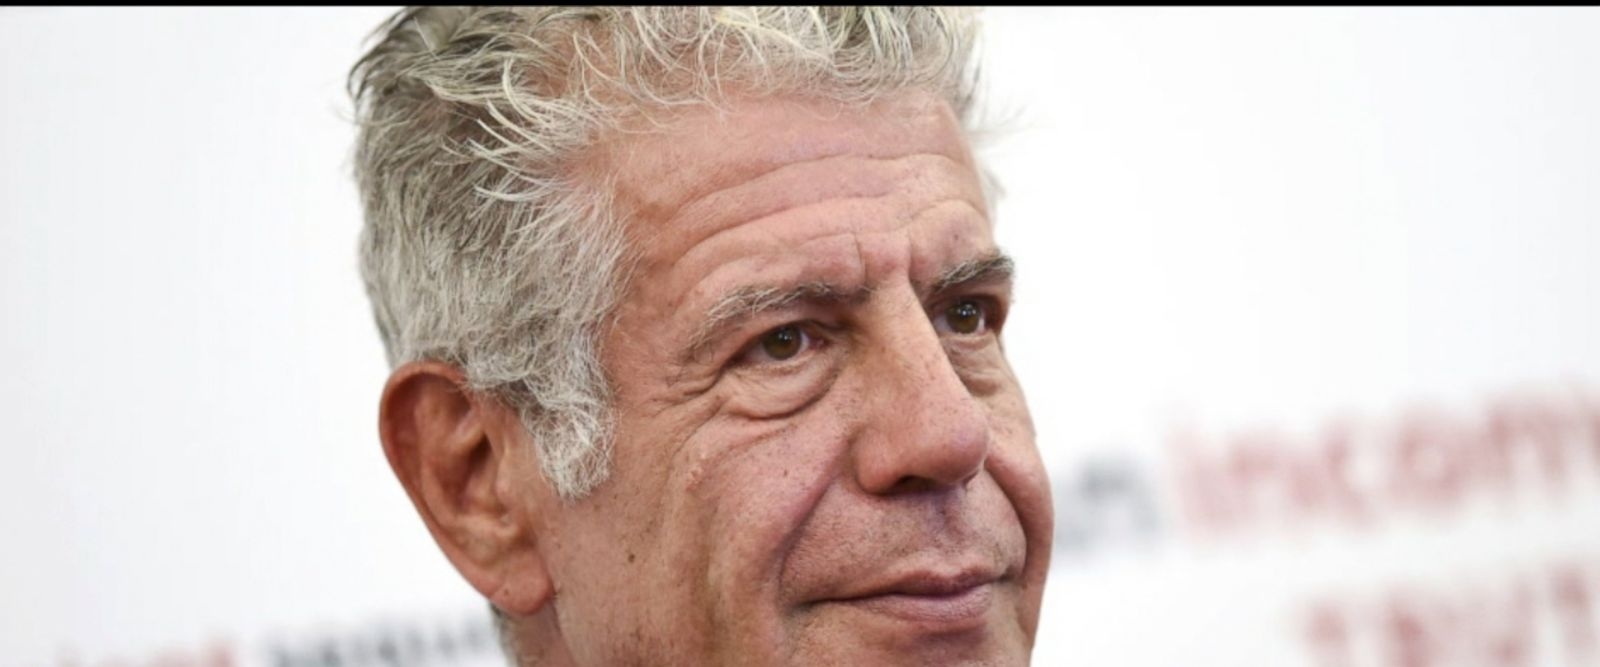 Bourdain did not have narcotics in his body when he died on June 8, a French judicial official told The New York Times.